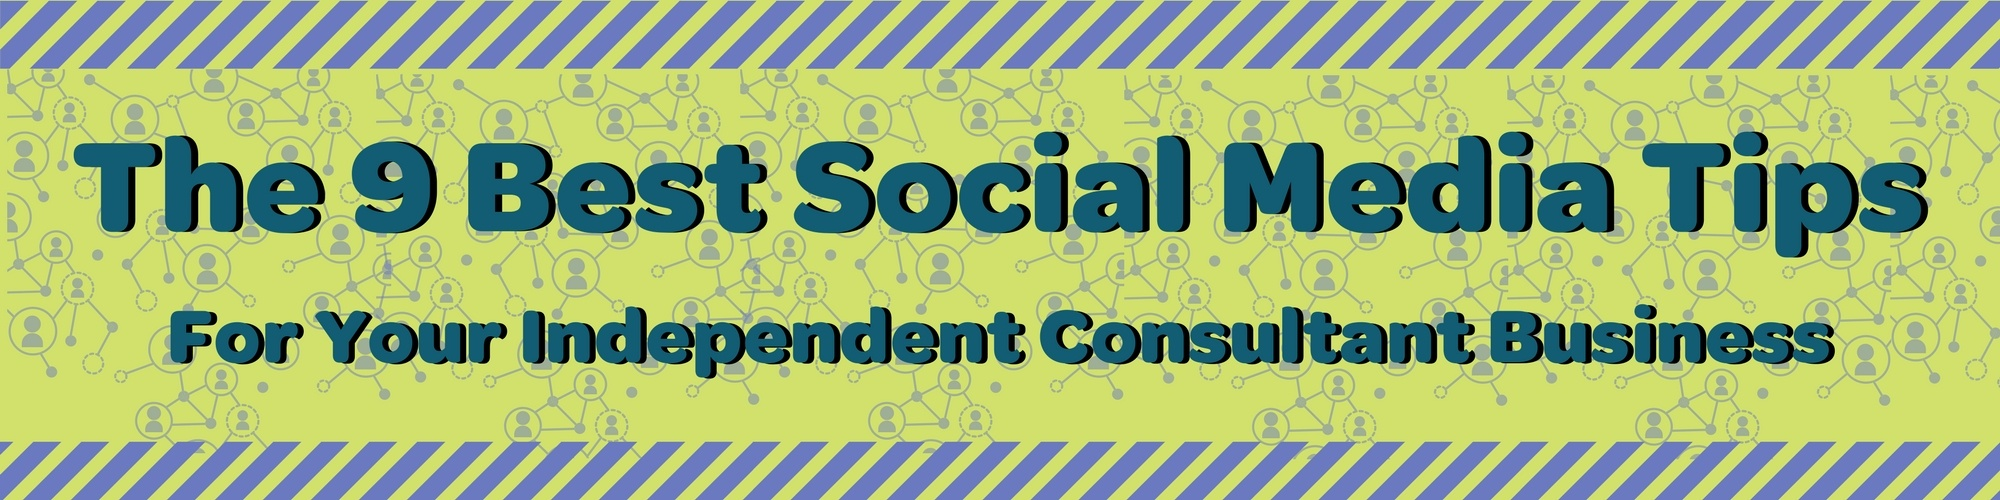 9 Social Media Tips to Improve Your Independ Counselor Business